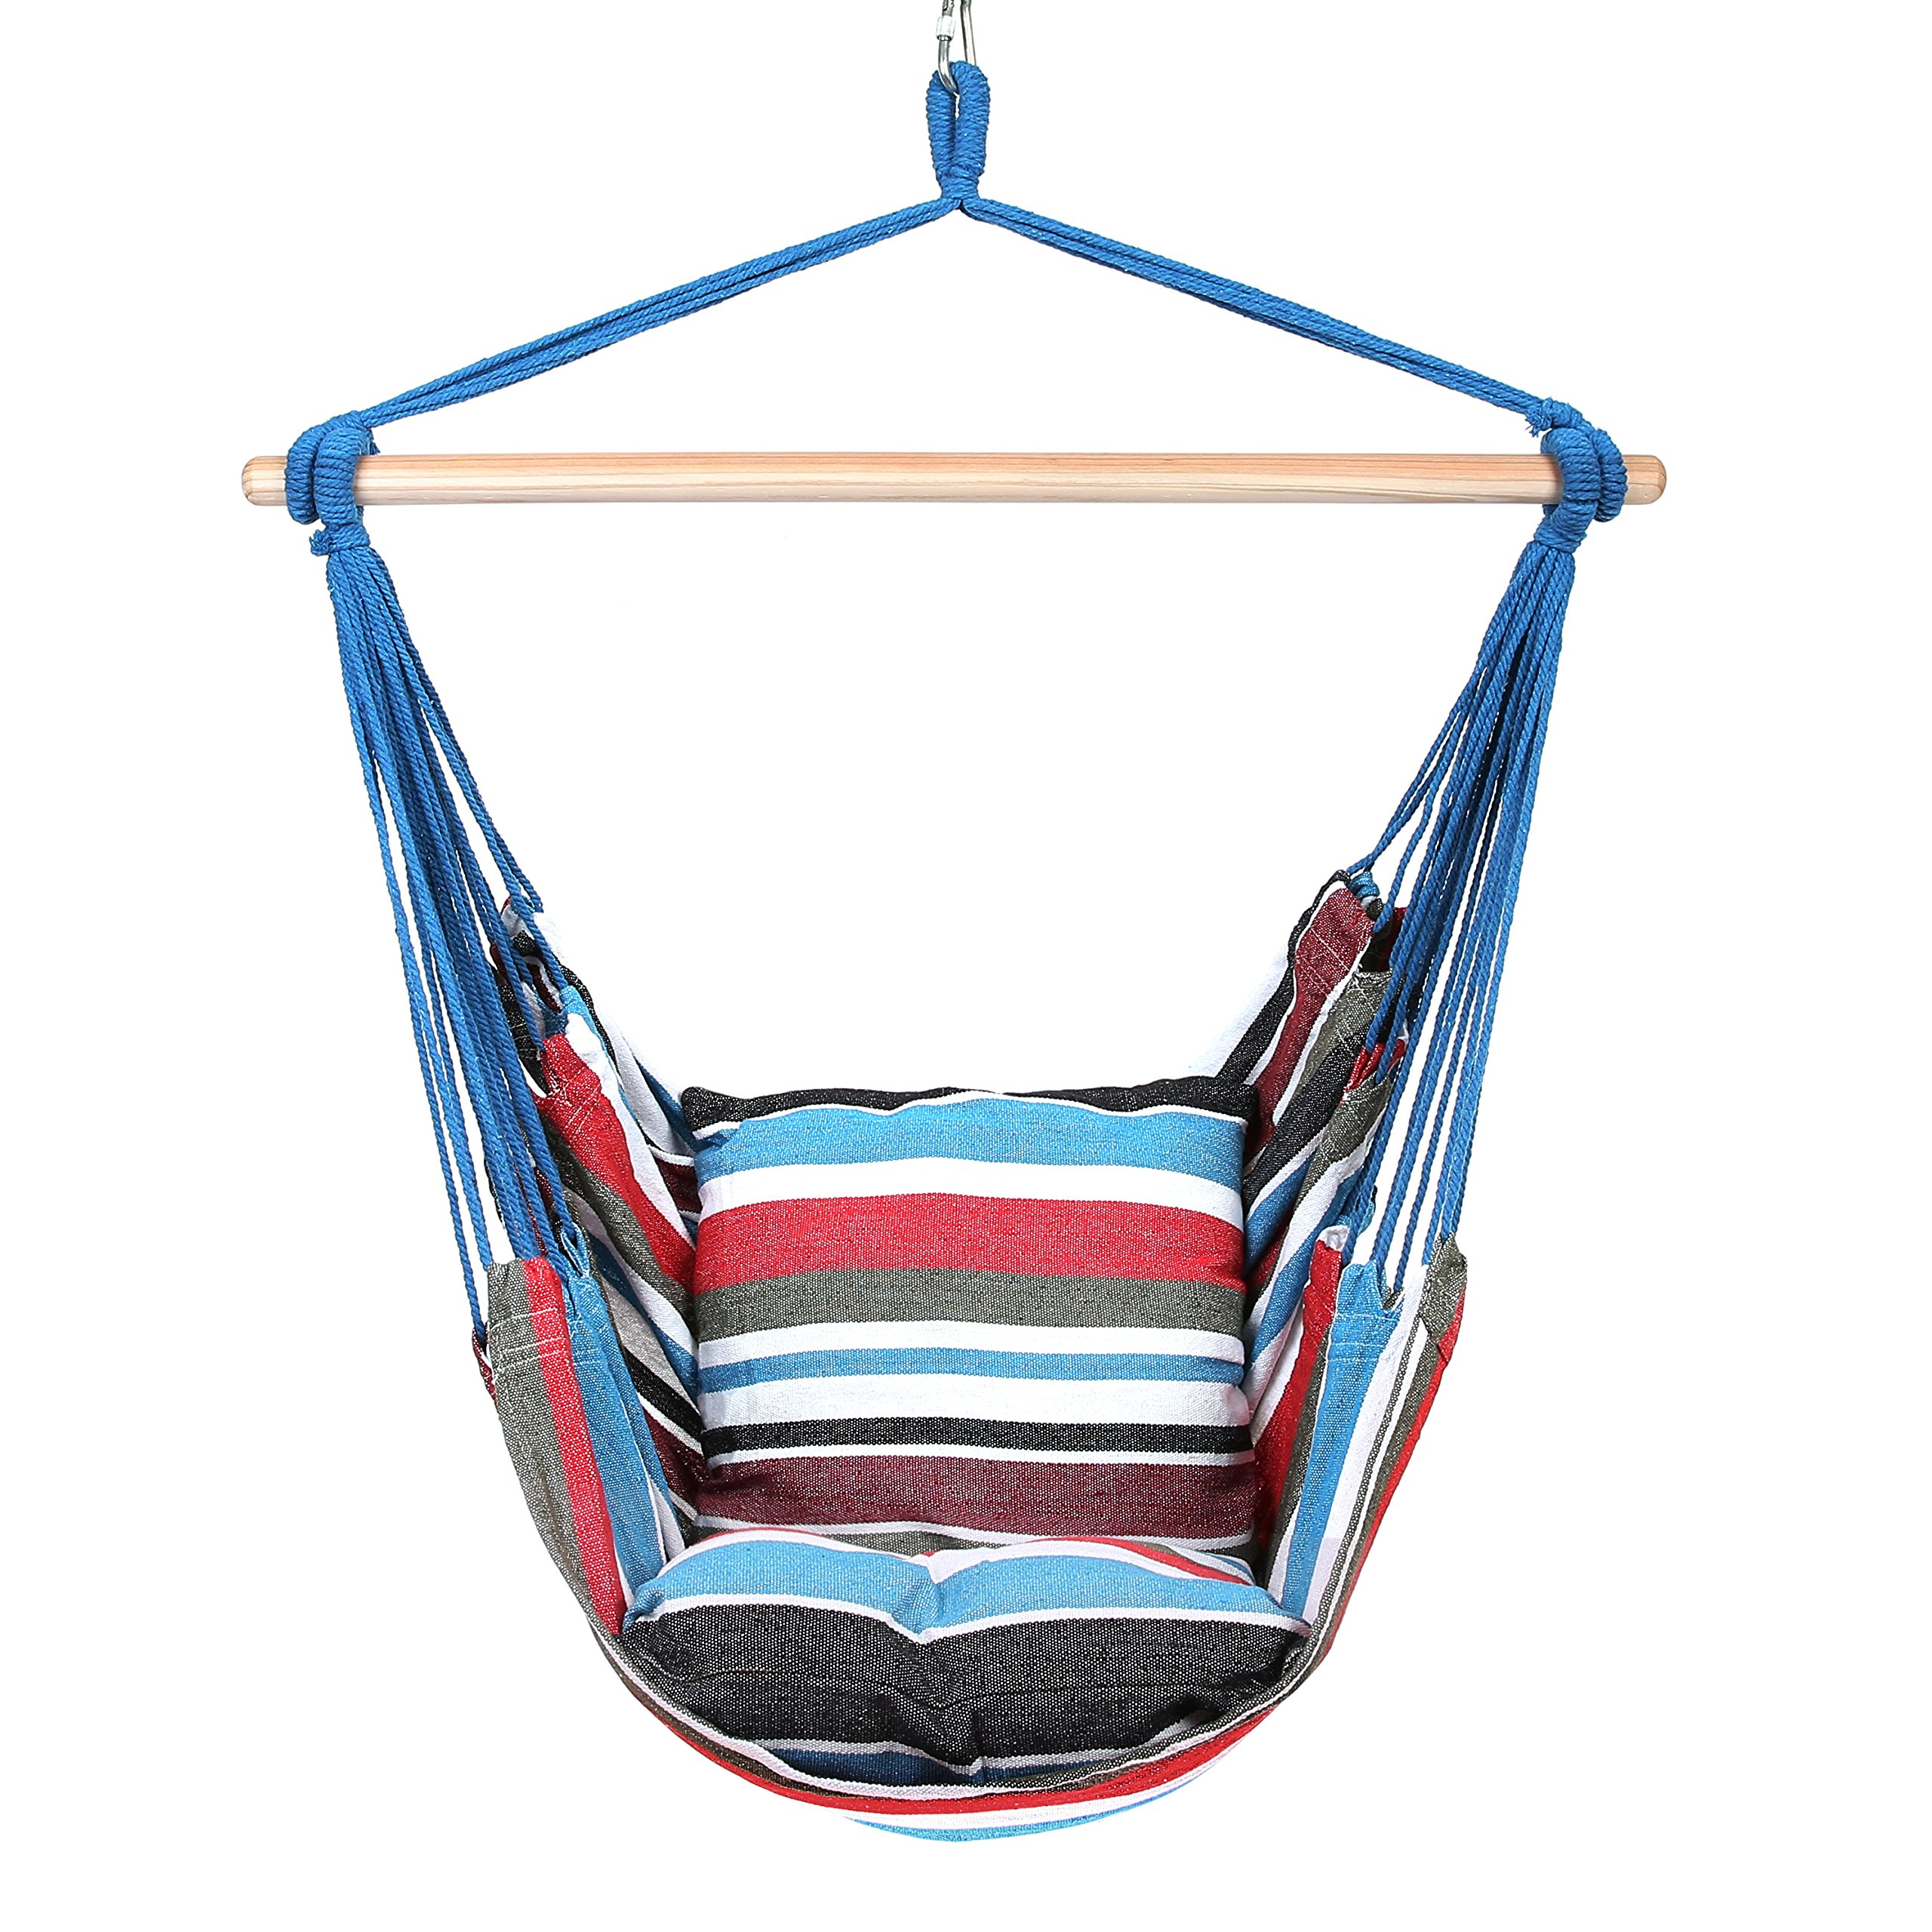 Blissun Hanging Hammock Chair, Hanging Swing Chair with Two Cushions, 34 Inch Wide Seat (Cool Breeze) by Blissun (Image #1)